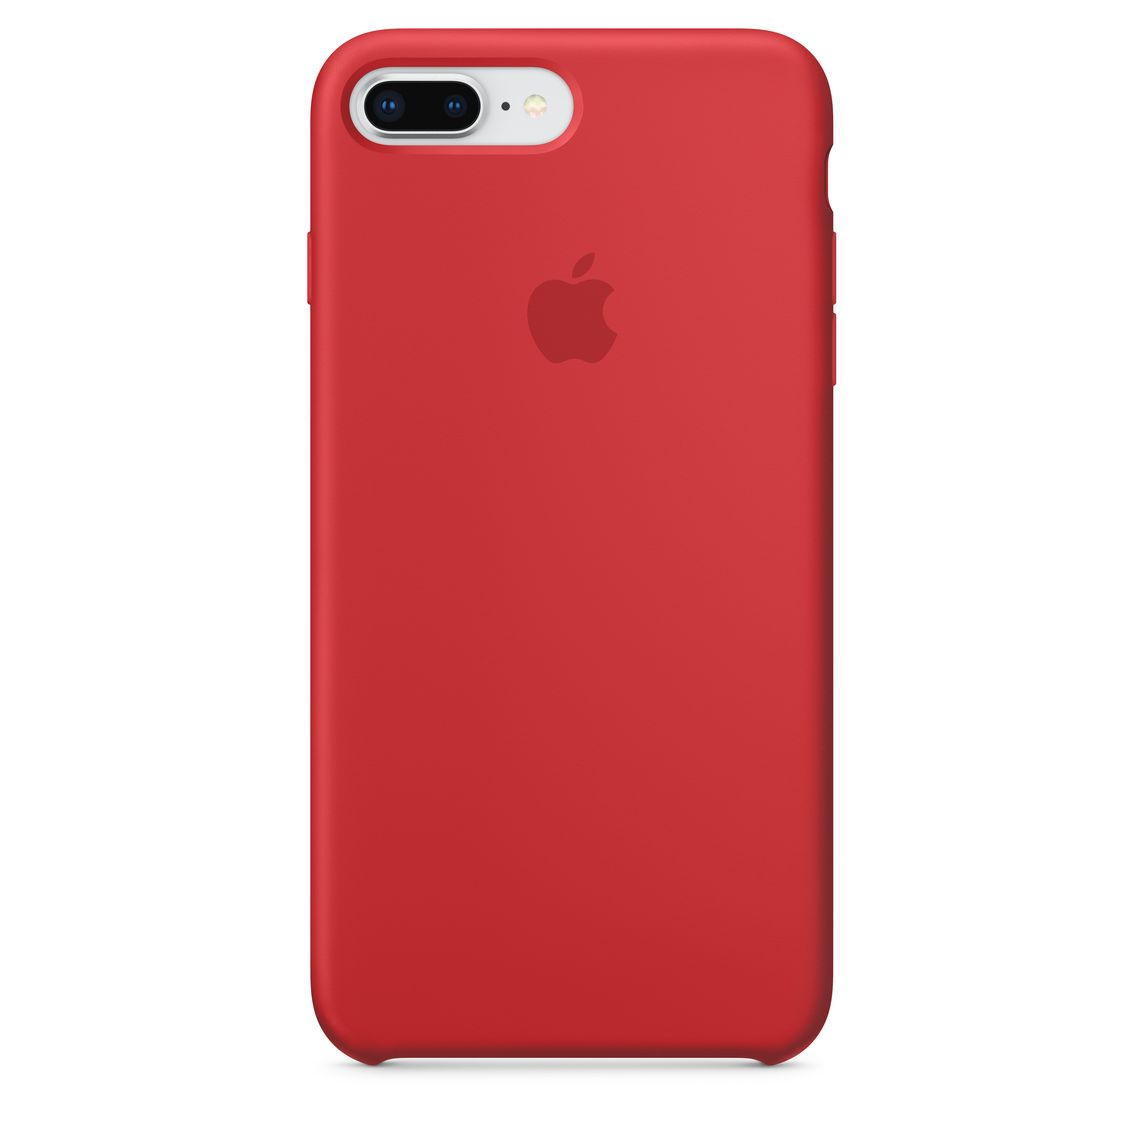 new product 5b612 004f0 iPhone 8 Plus / 7 Plus Silicone Case — (PRODUCT)RED